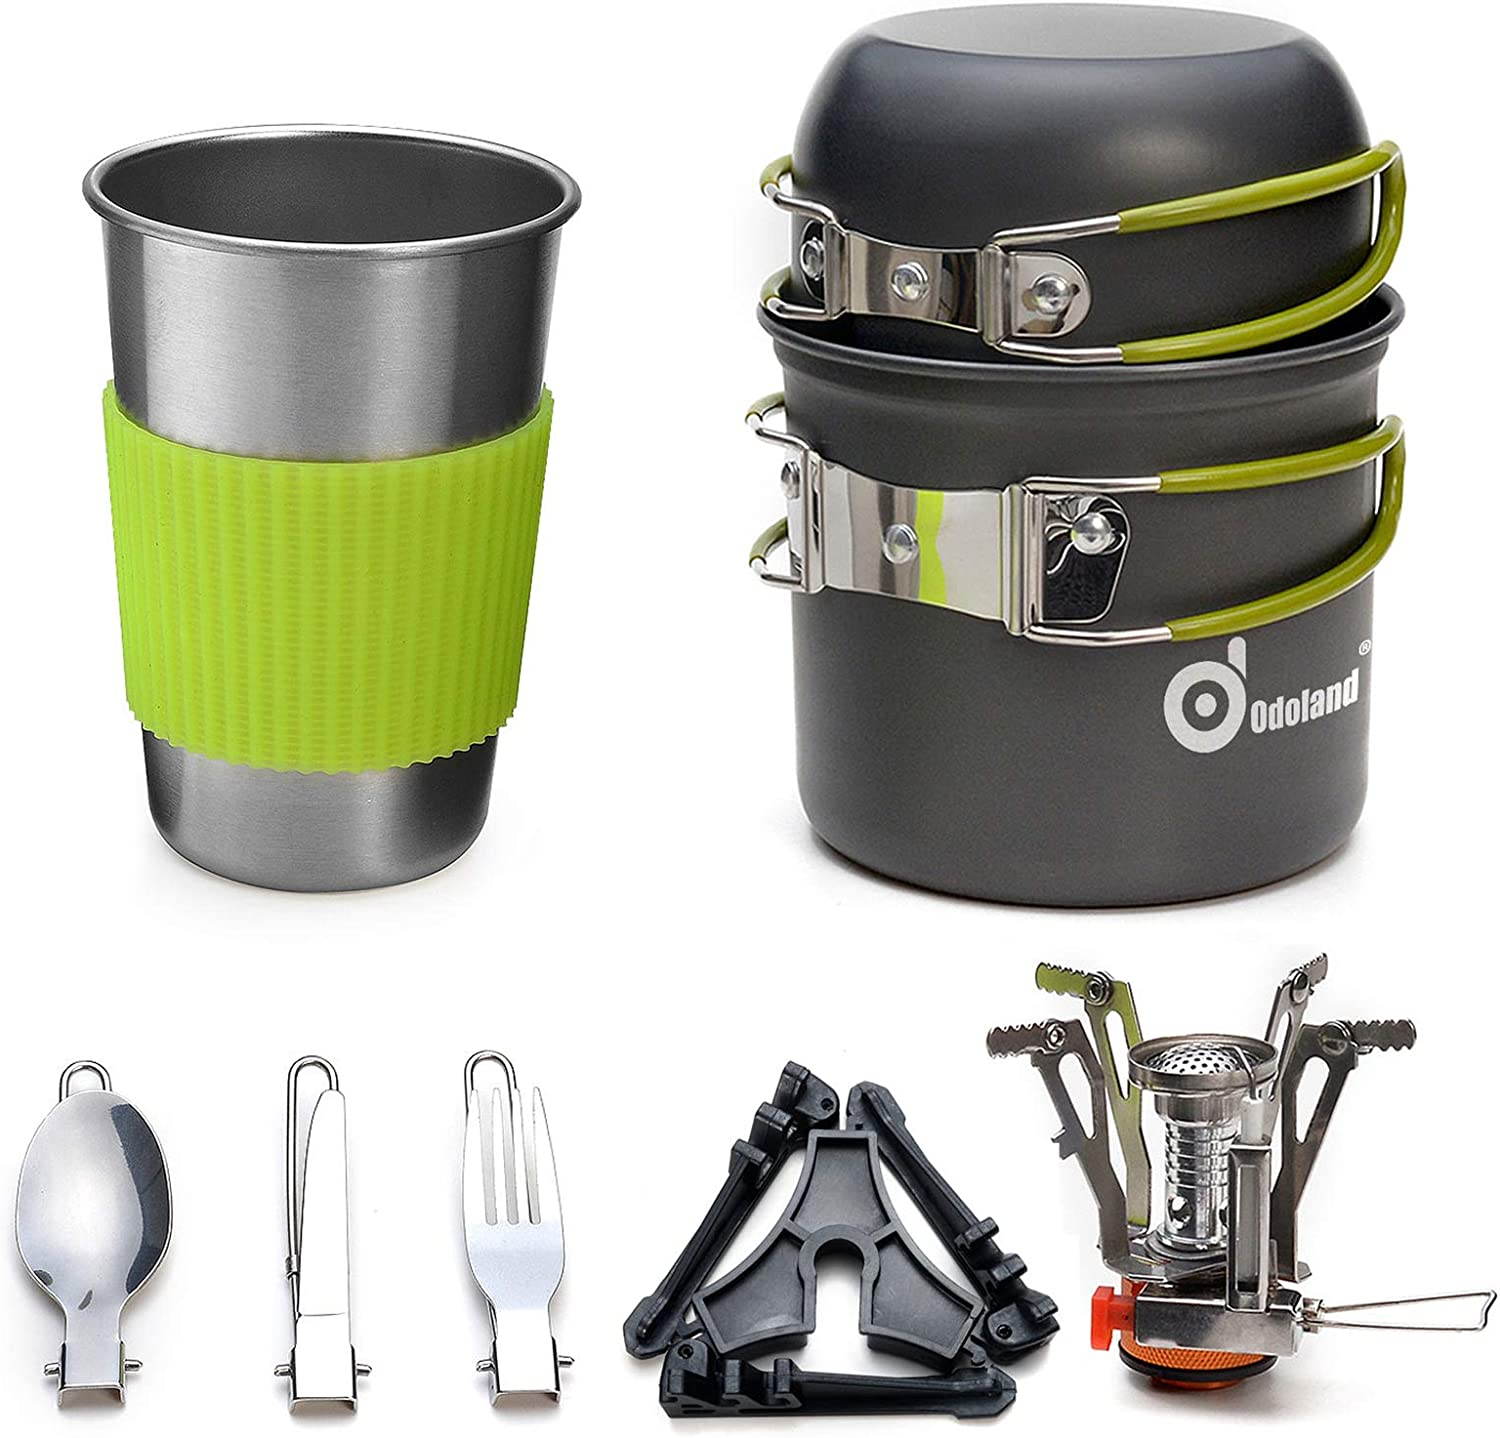 Odoland Camping Cookware Stove Carabiner Tripod a Stand Canister Max 61% OFF Fees free